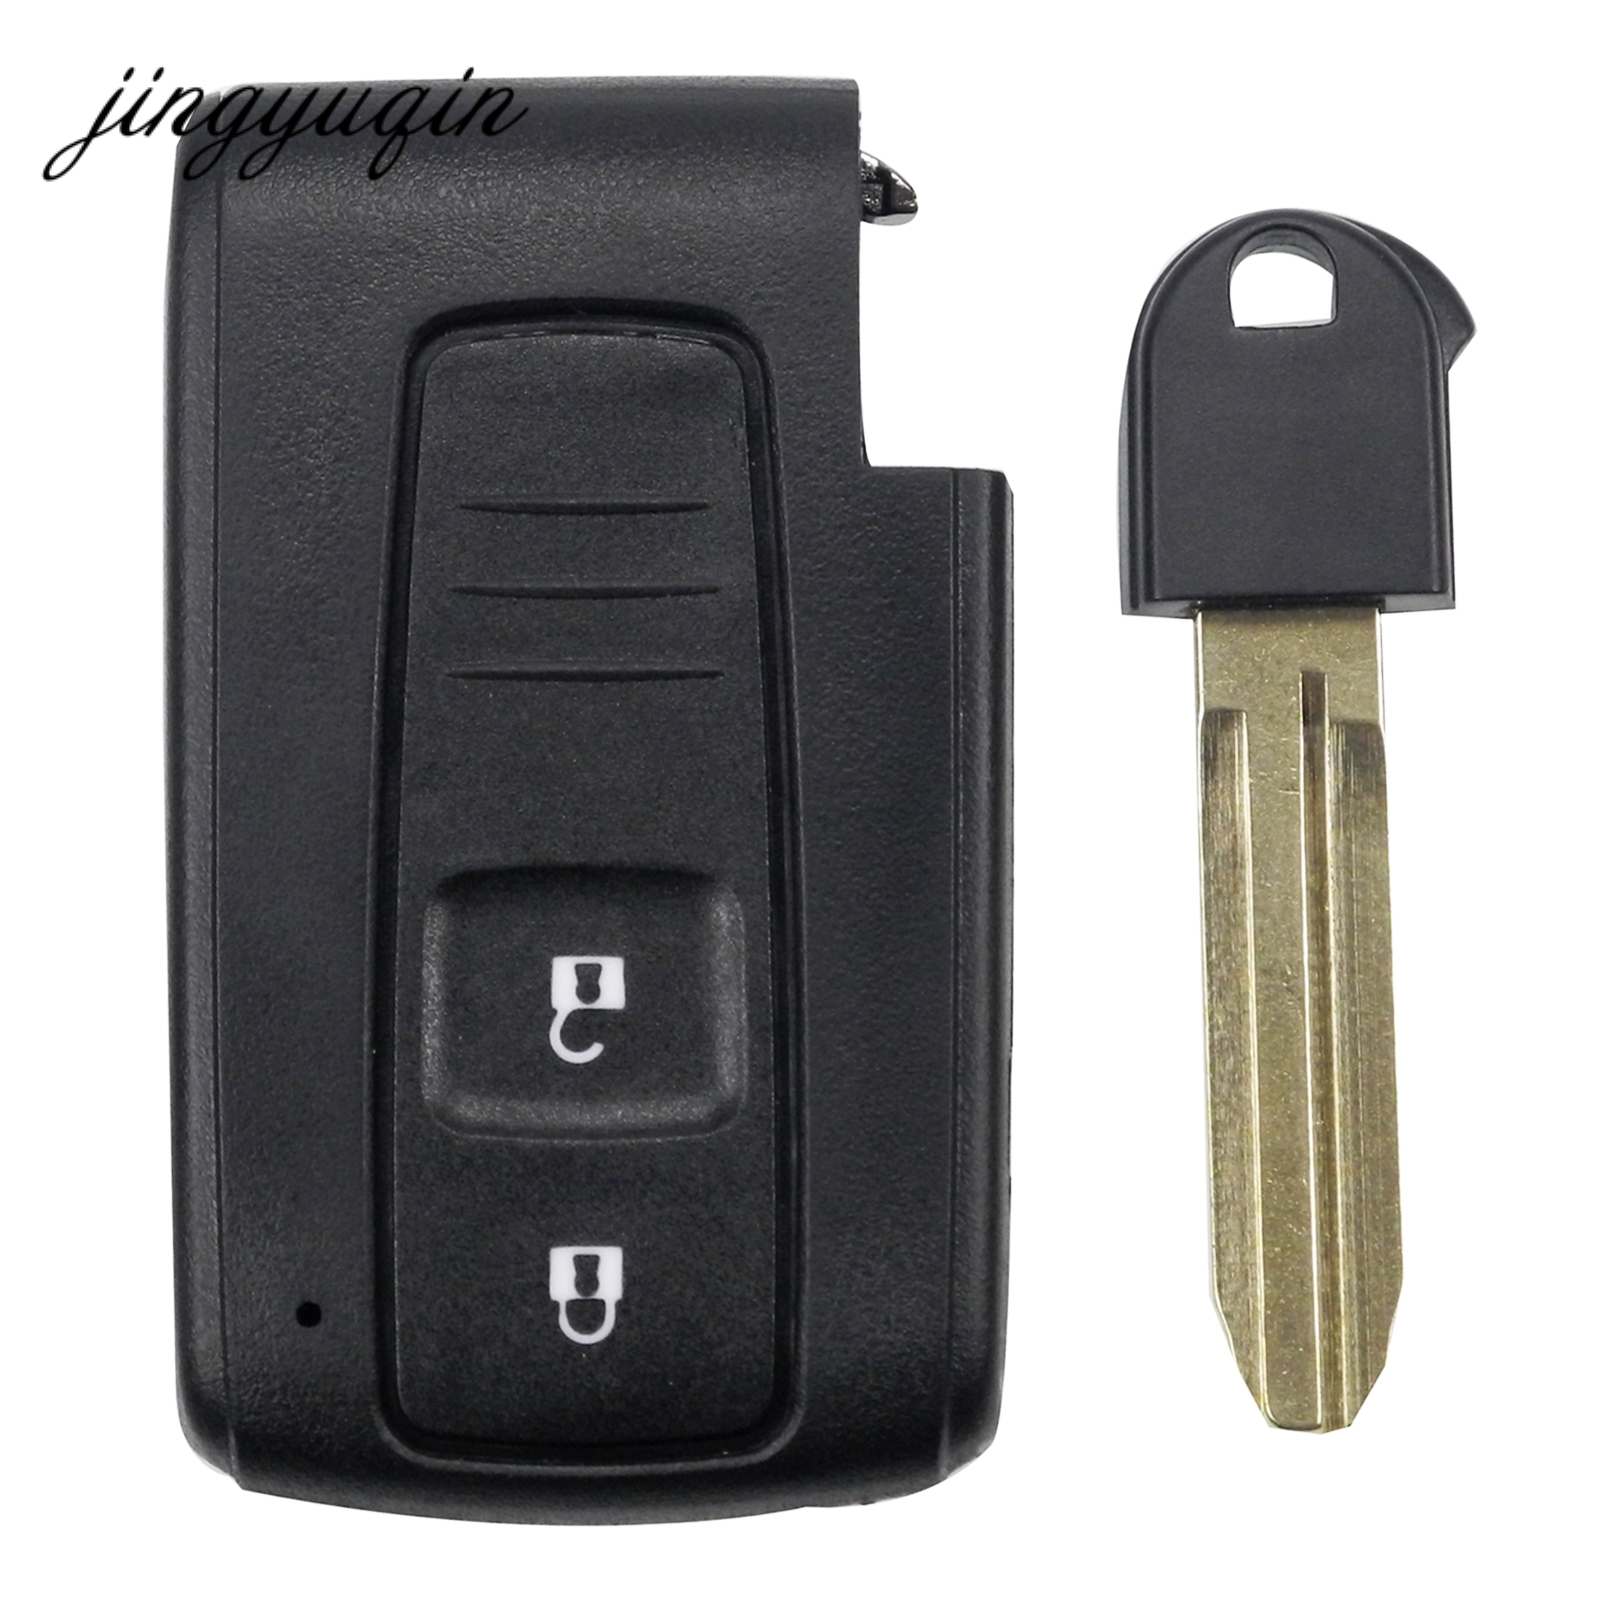 Image 2 - jingyuqin 2 BUTTON REMOTE KEY CASE FOR TOYOTA PRIUS COROLLA VERSO TOY43 BLADE-in Car Key from Automobiles & Motorcycles